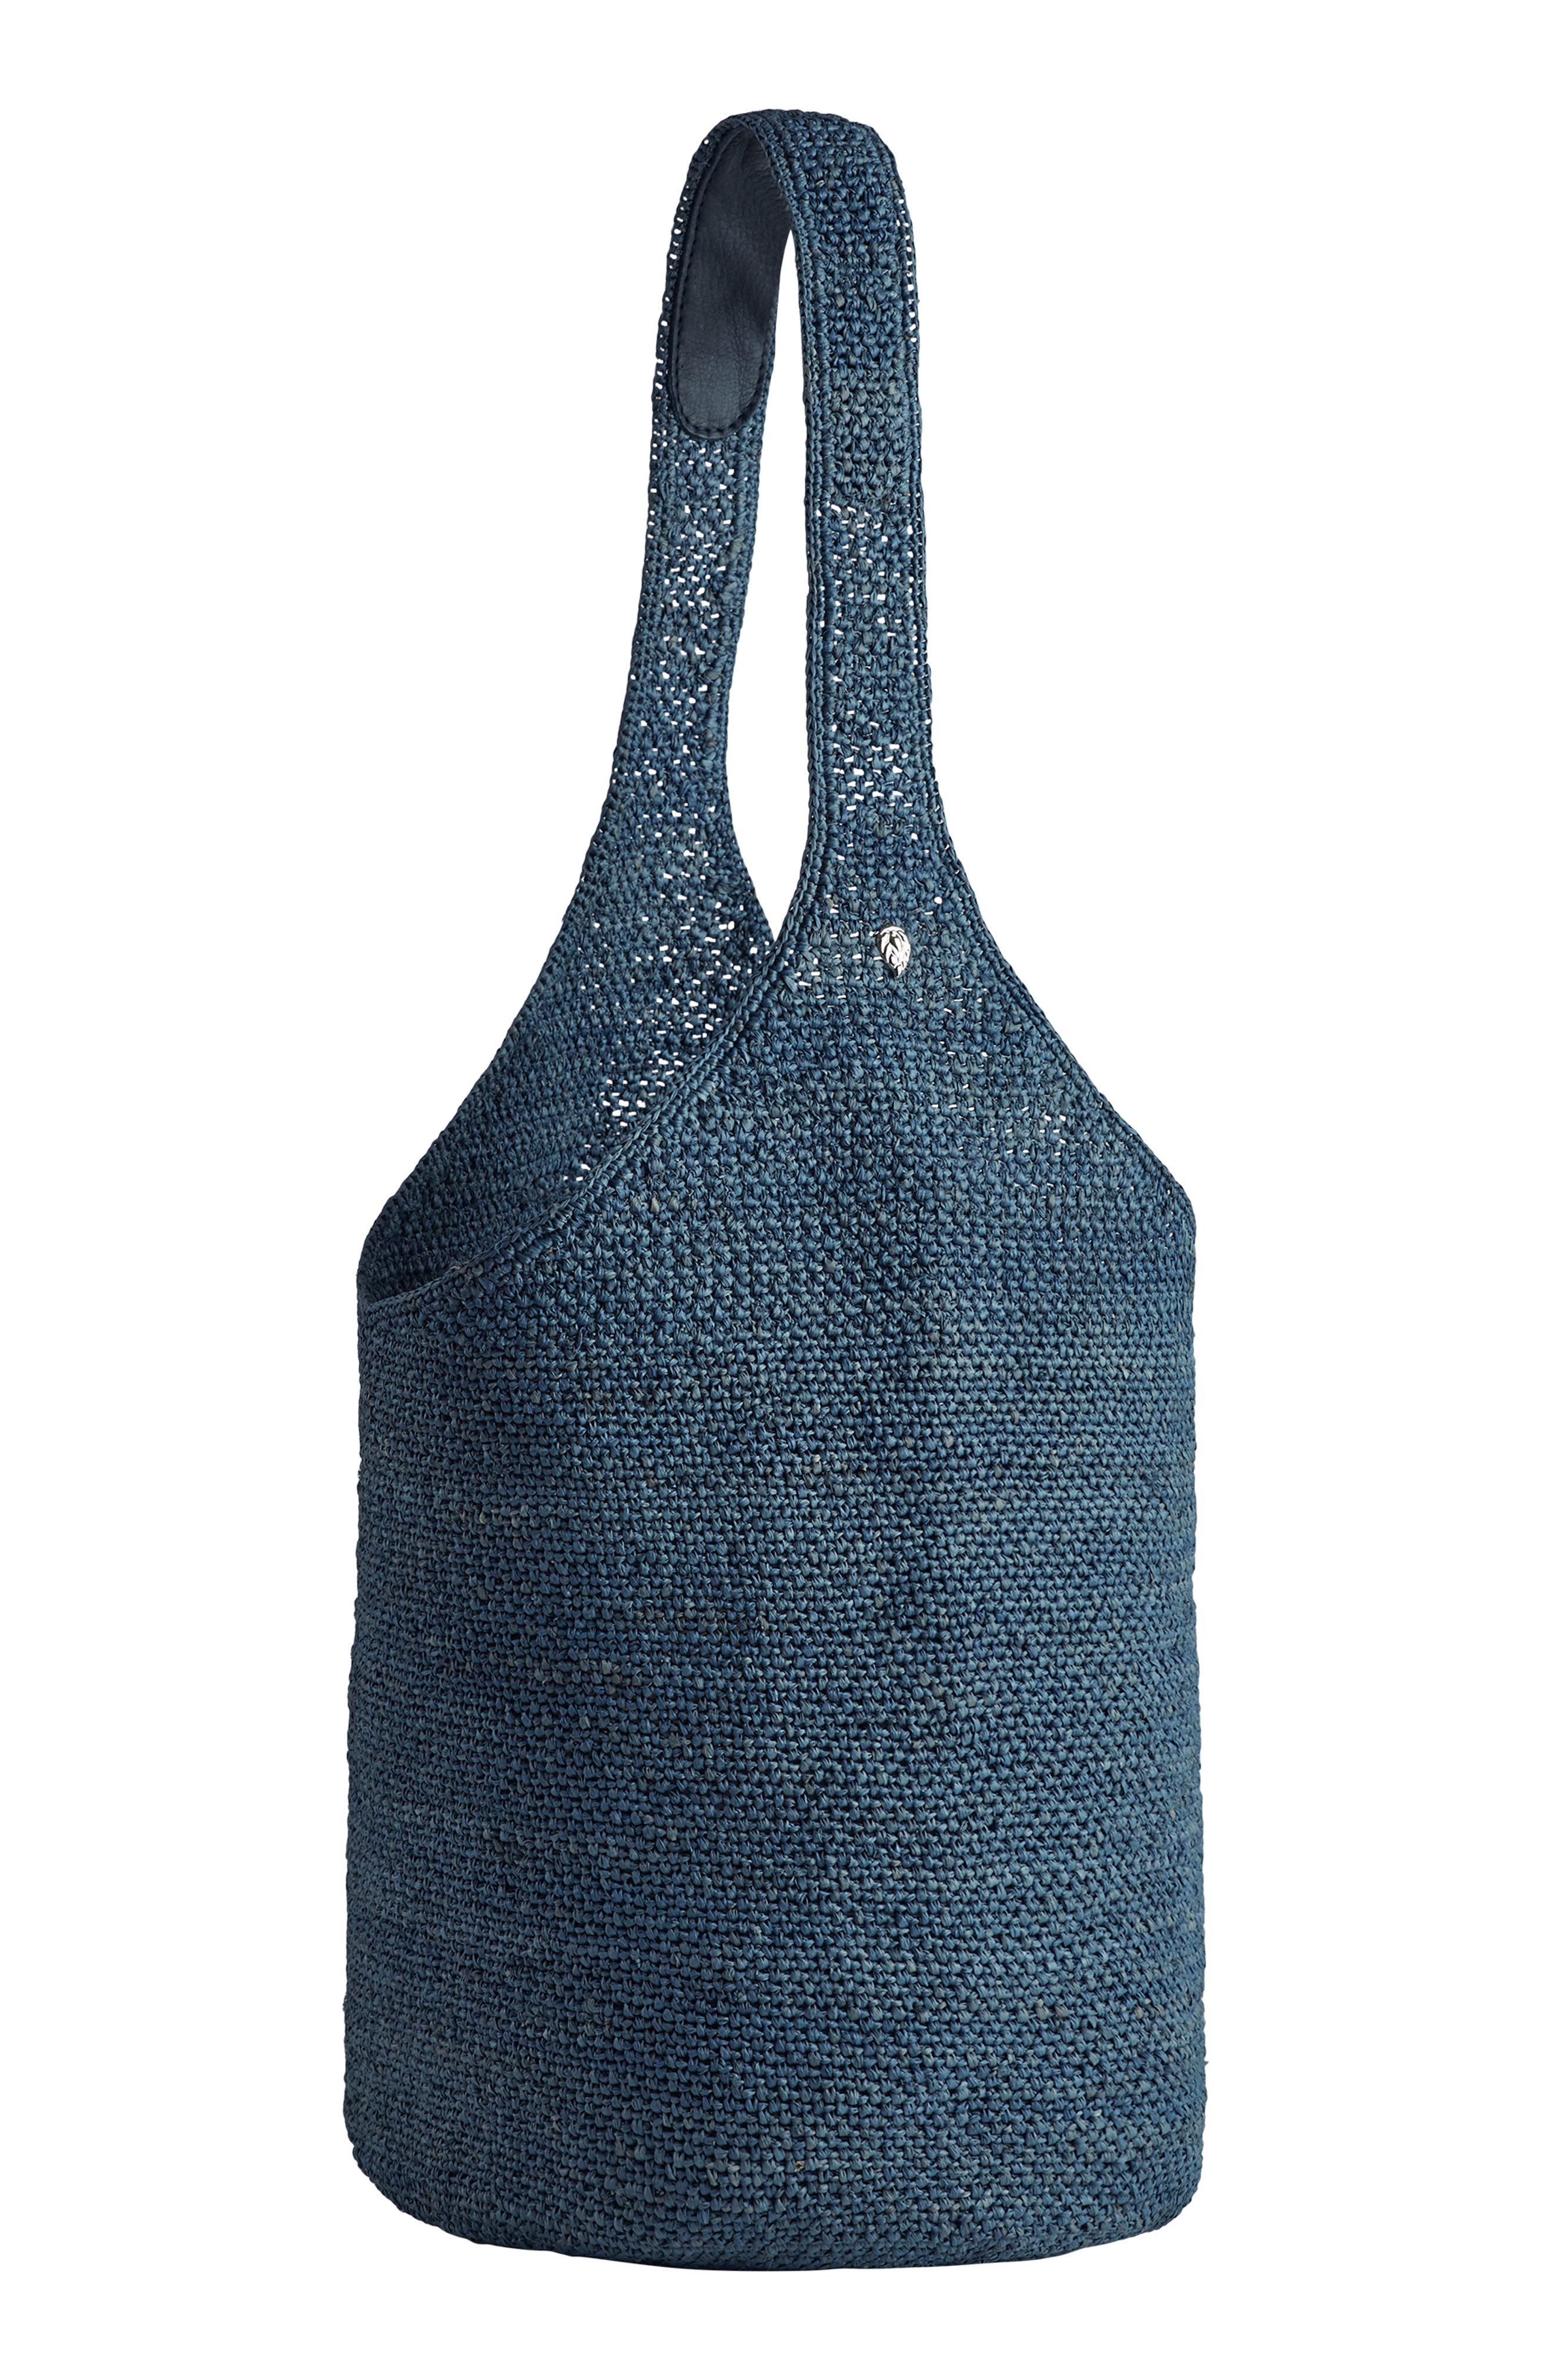 Helen Kaminksi Carillo Woven Raffia Sac Bucket Bag,                         Main,                         color, GLACIAL